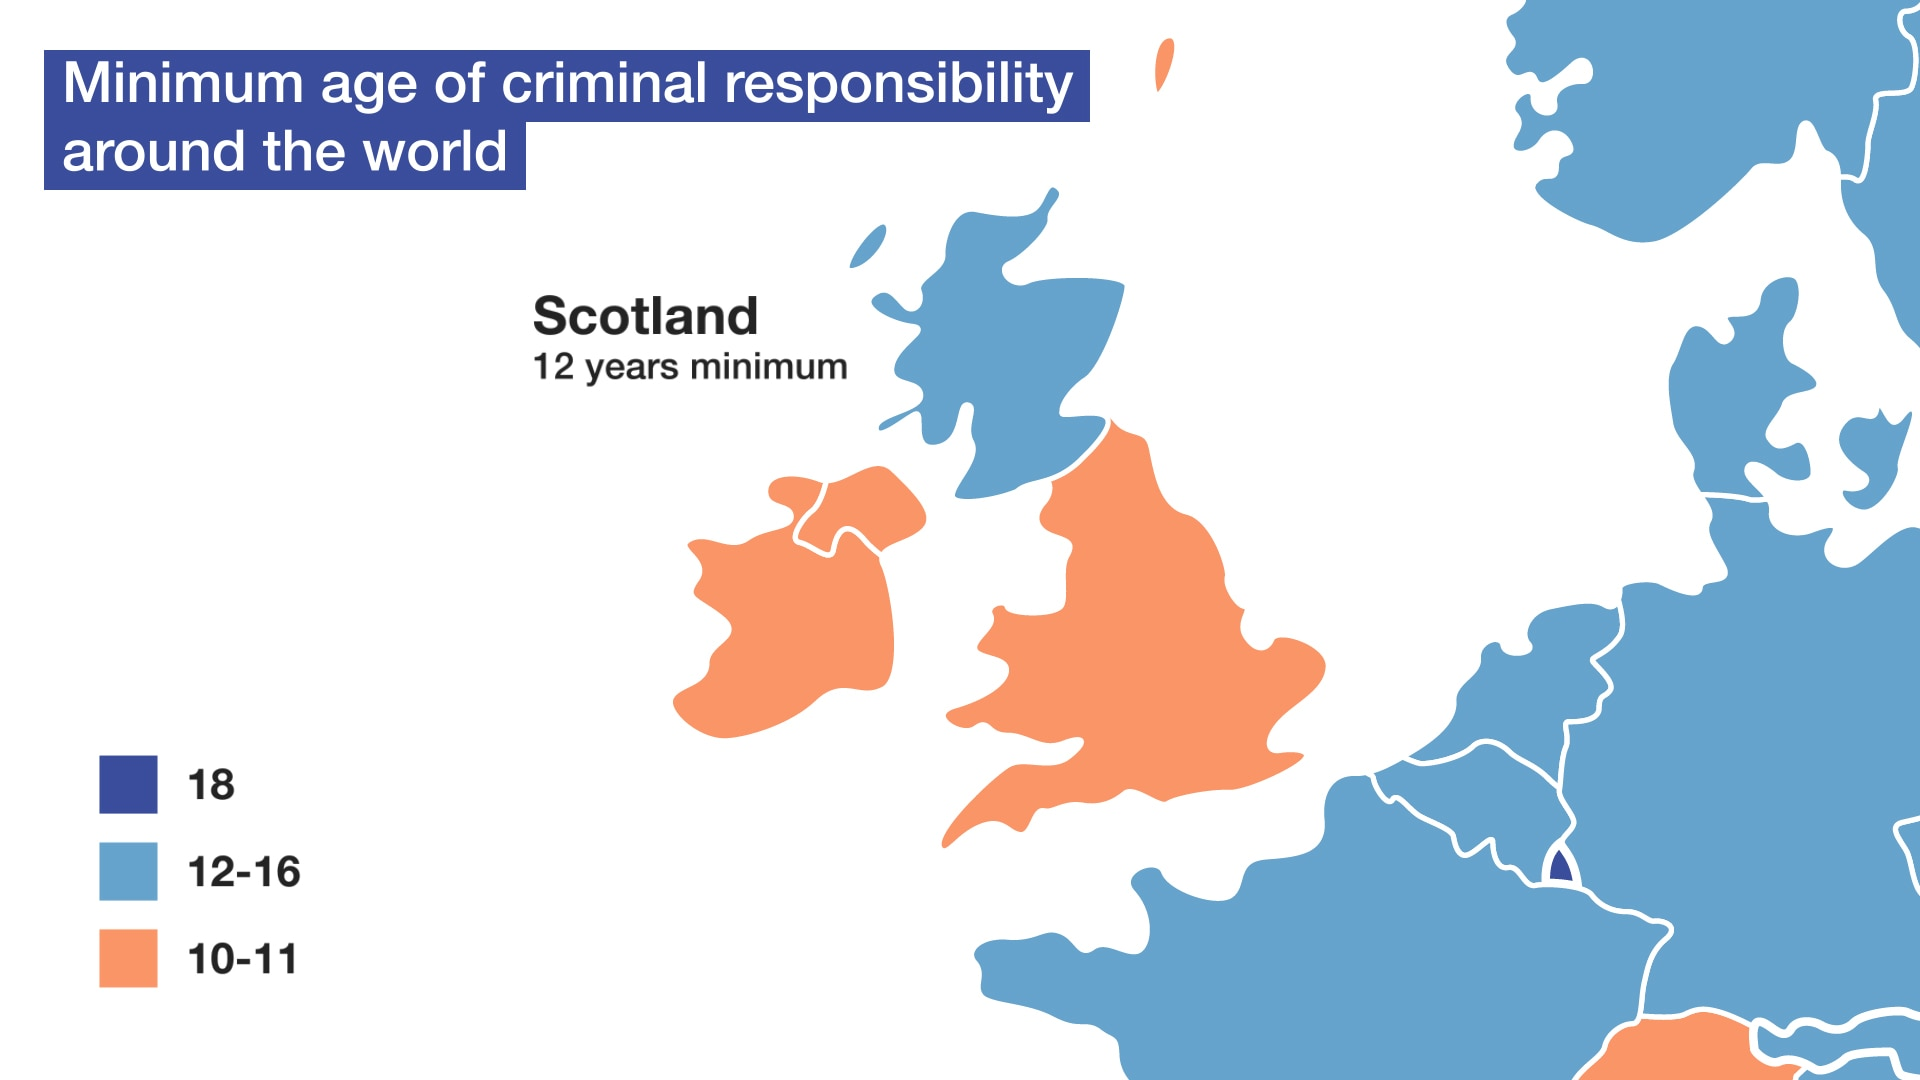 Minimum age of criminal responsibility around the world.